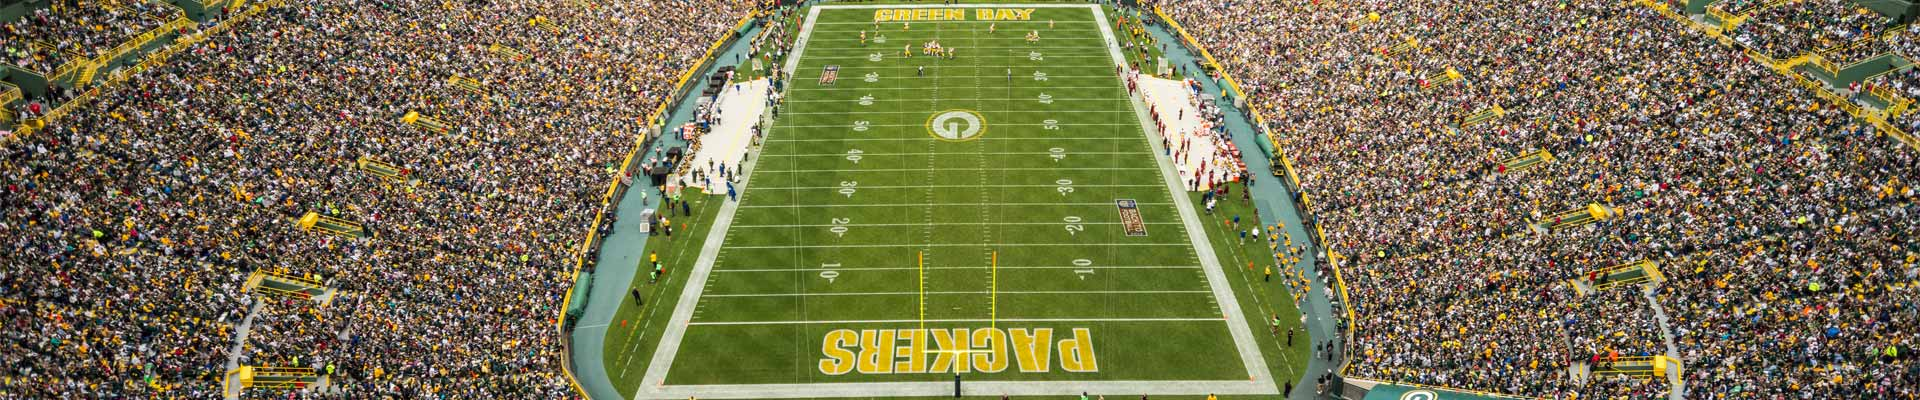 Green Bay Packers Travel and Vacation Packages